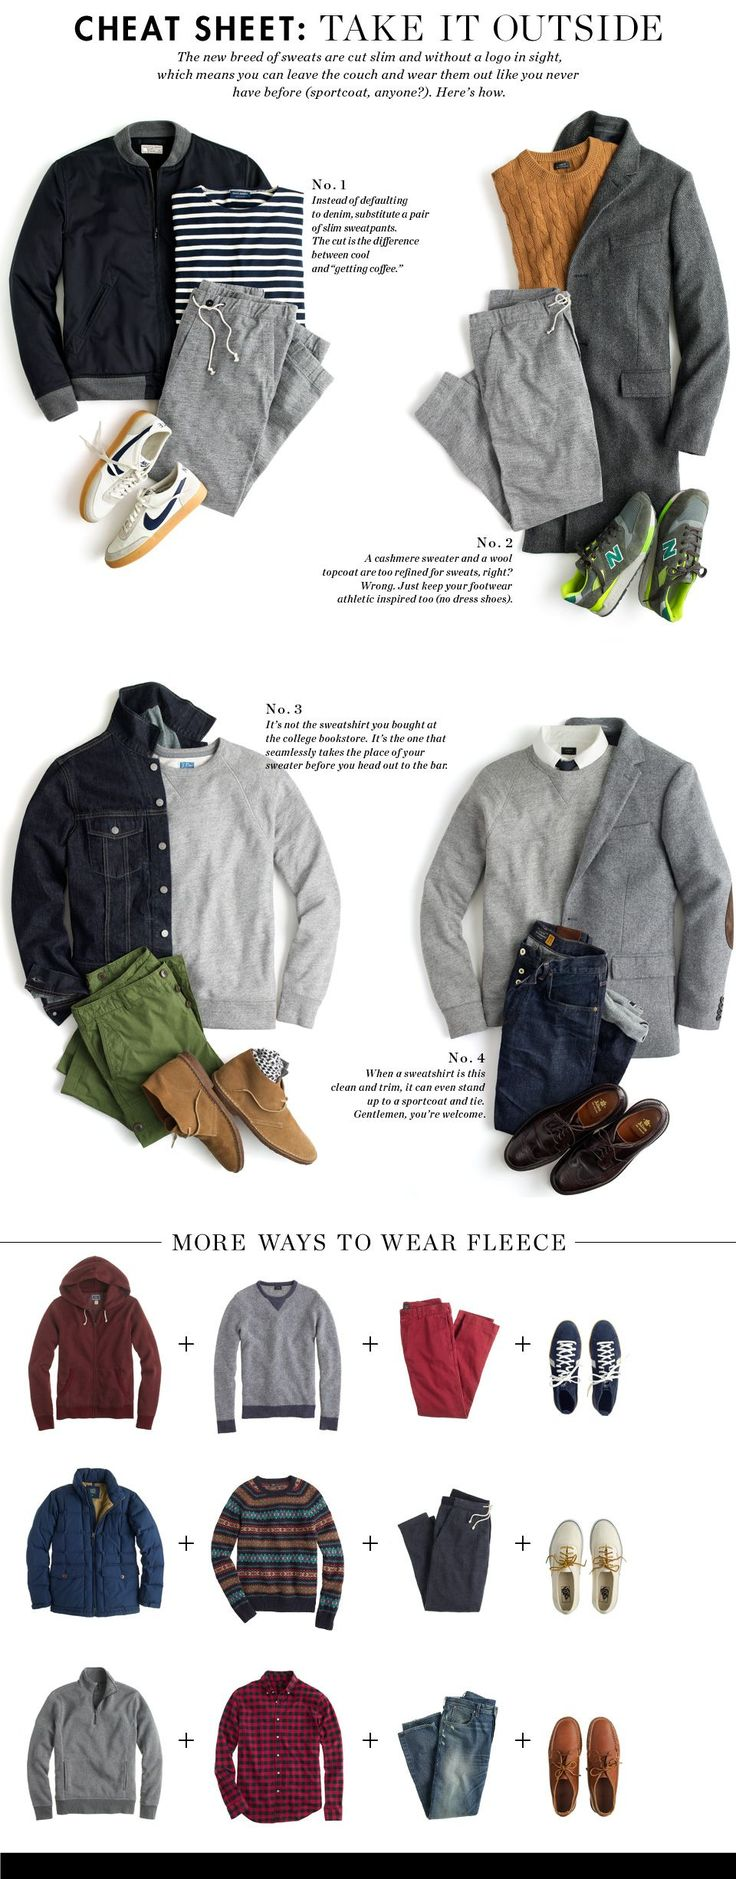 Cheat Sheet: Take It Outside - the right cut, the right pairings and you have repurposed and up cycled your look.